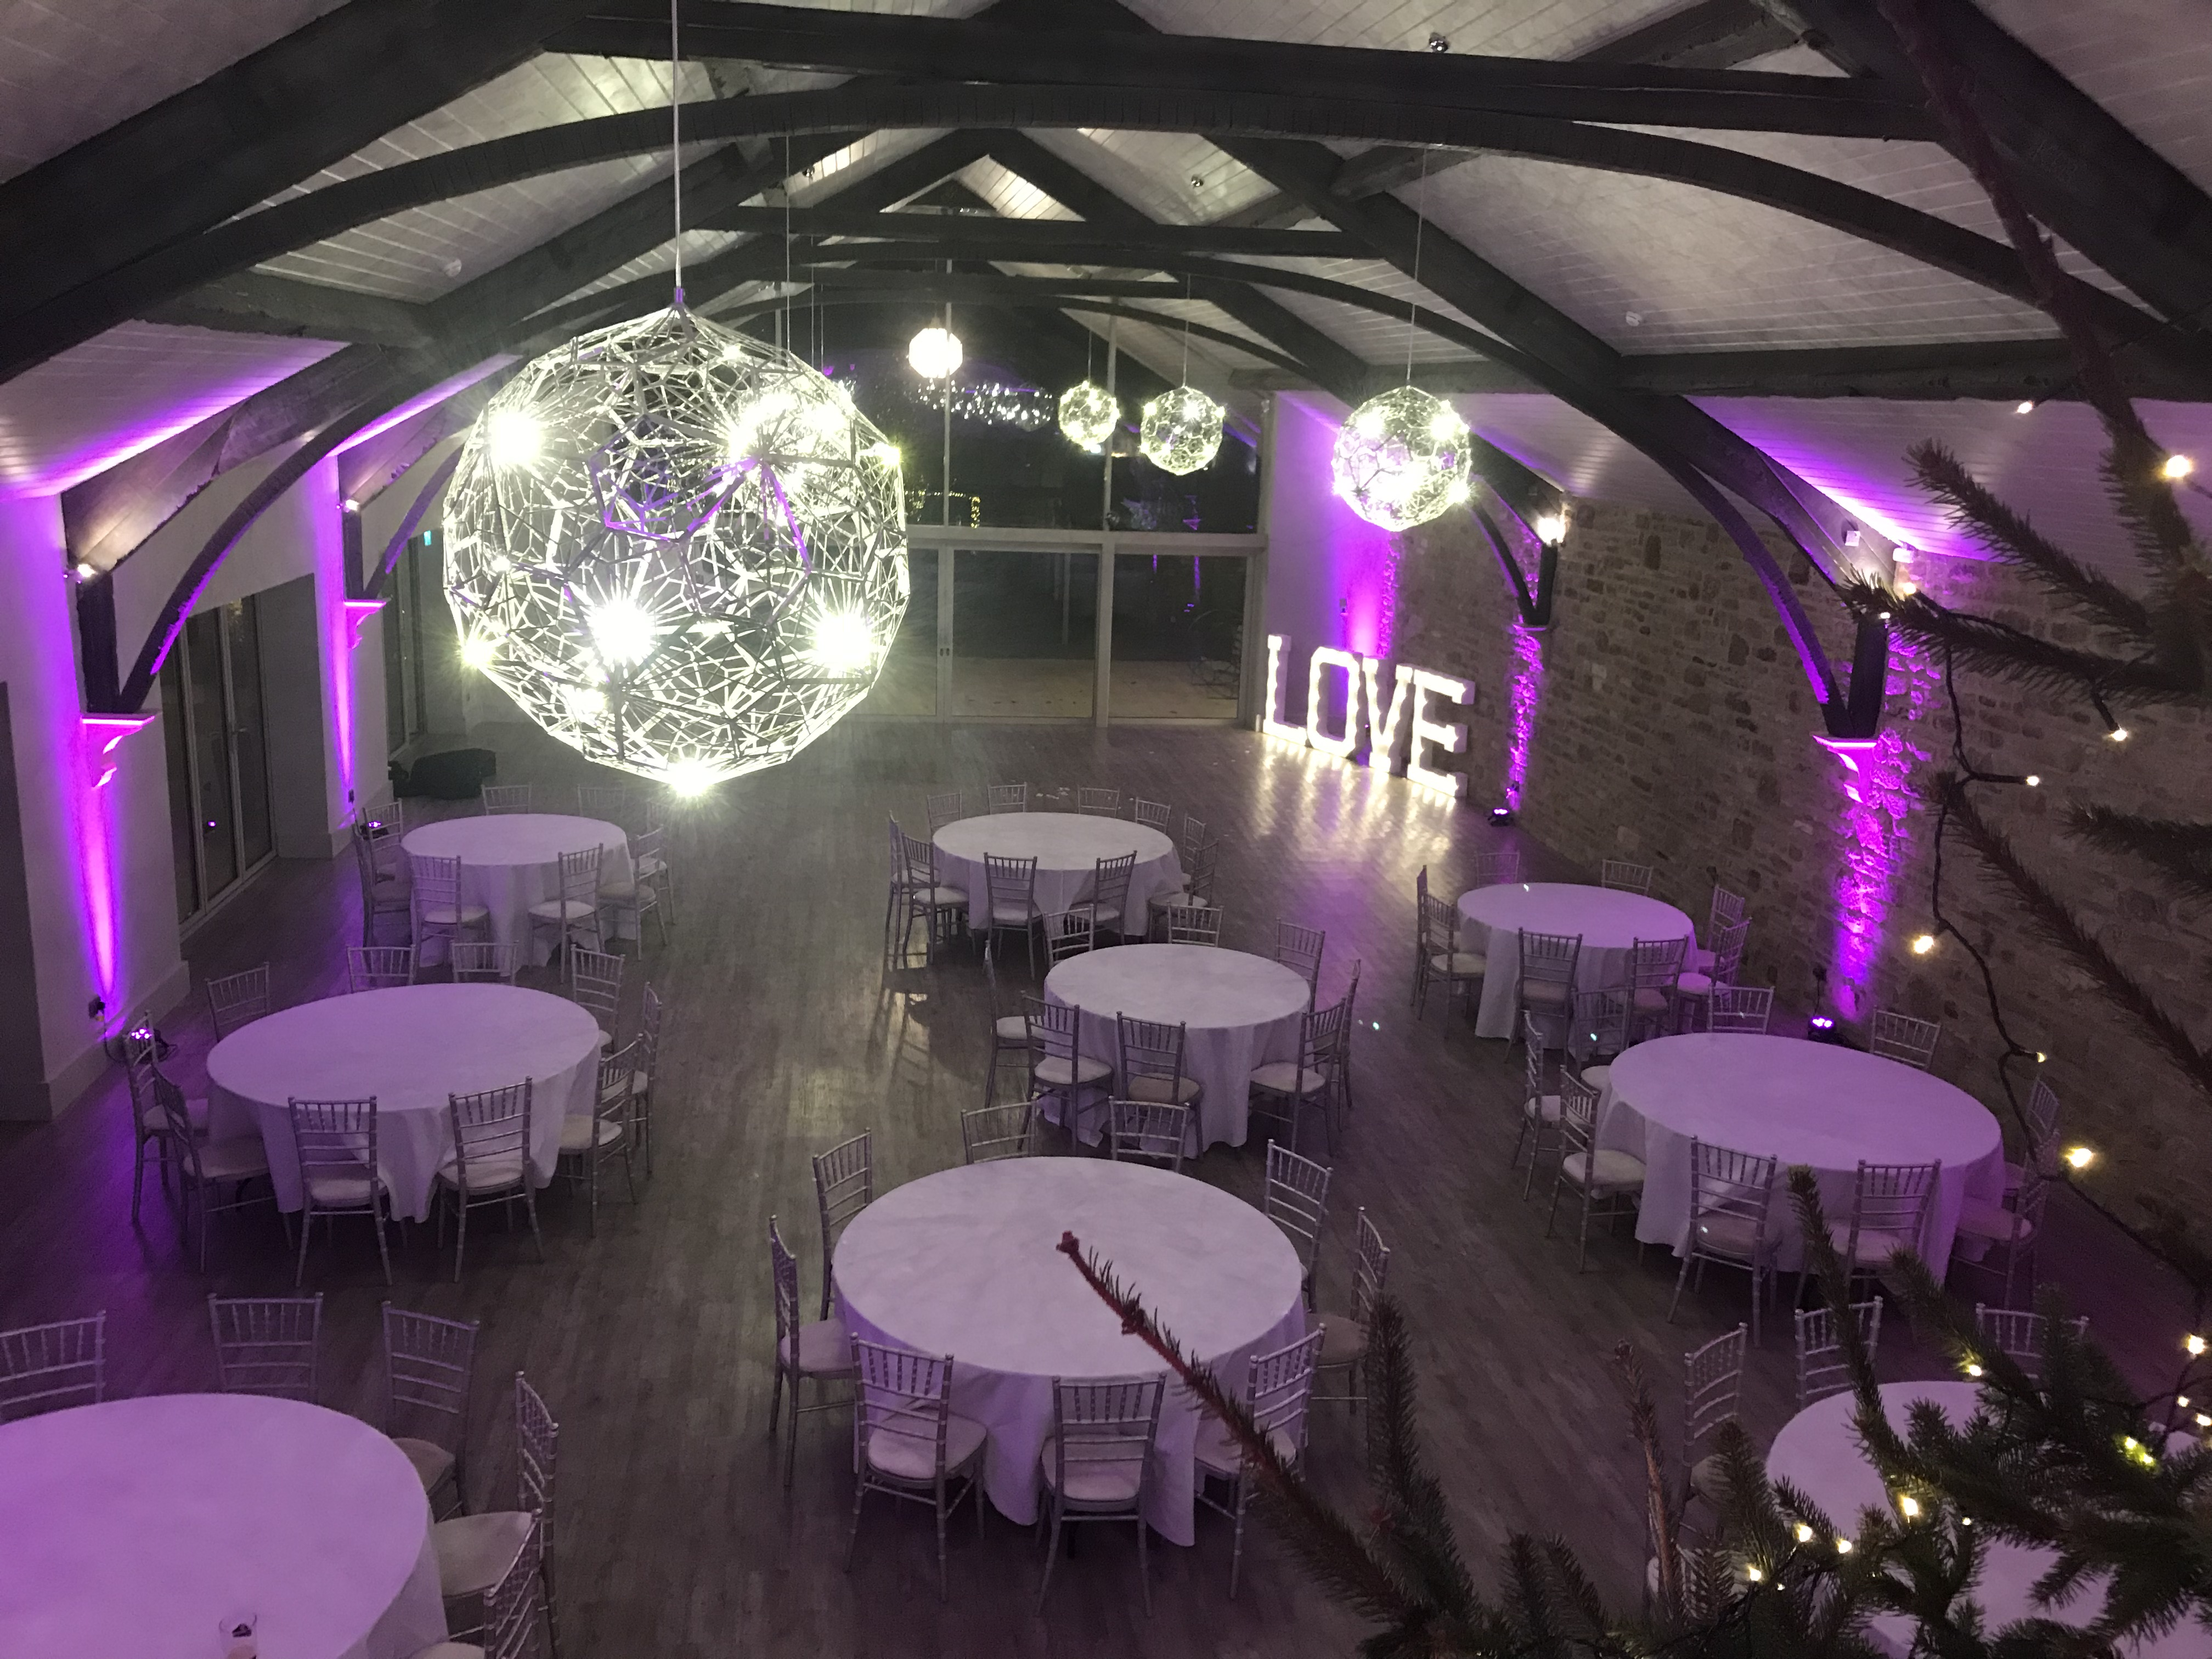 The Yorkshire Wedding Barn